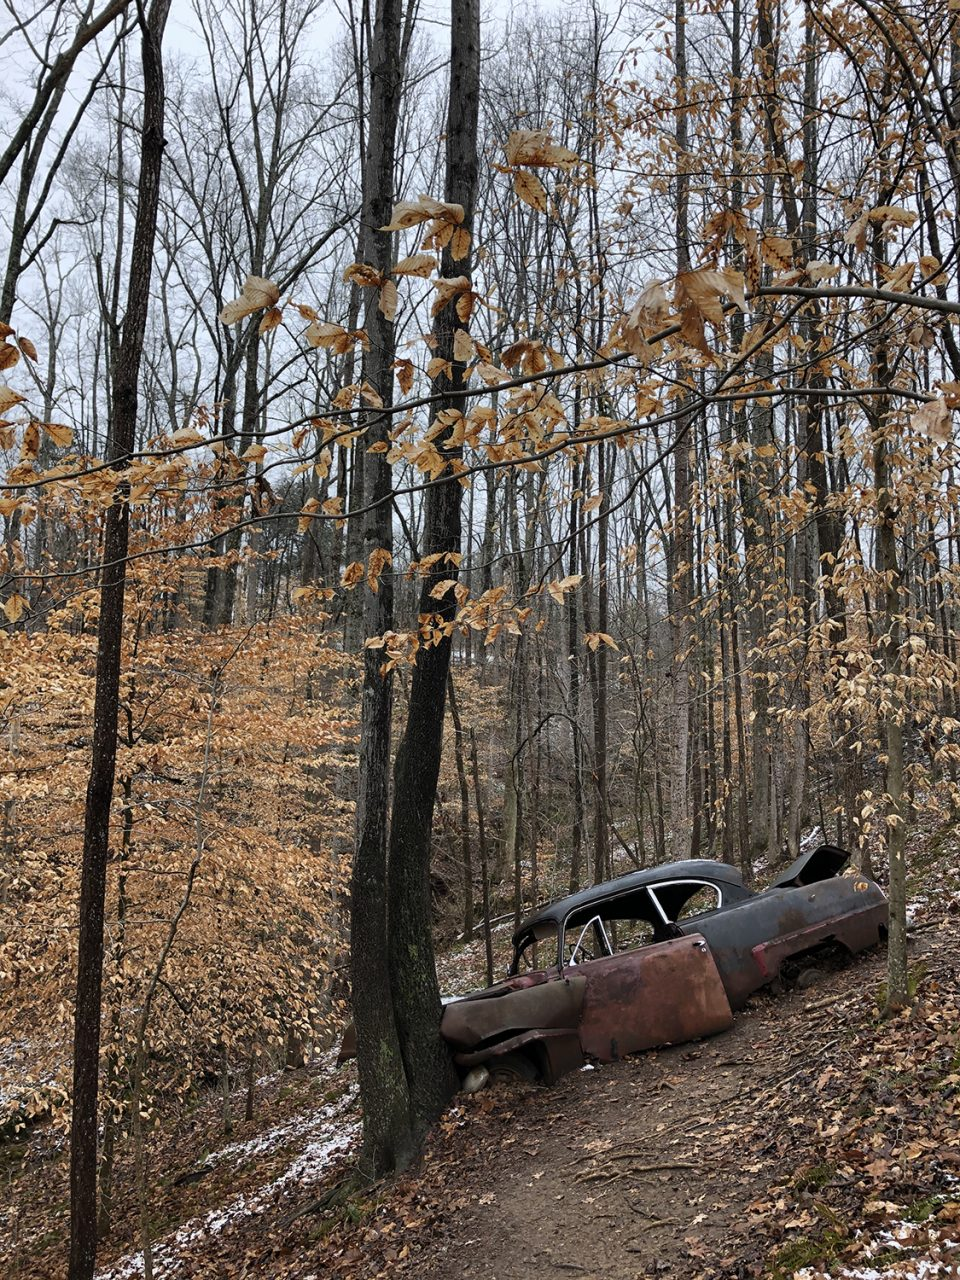 A crashed and abandoned 1953 Plymouth Cranbrook. Watch the video to learn a little more about this old crash site.